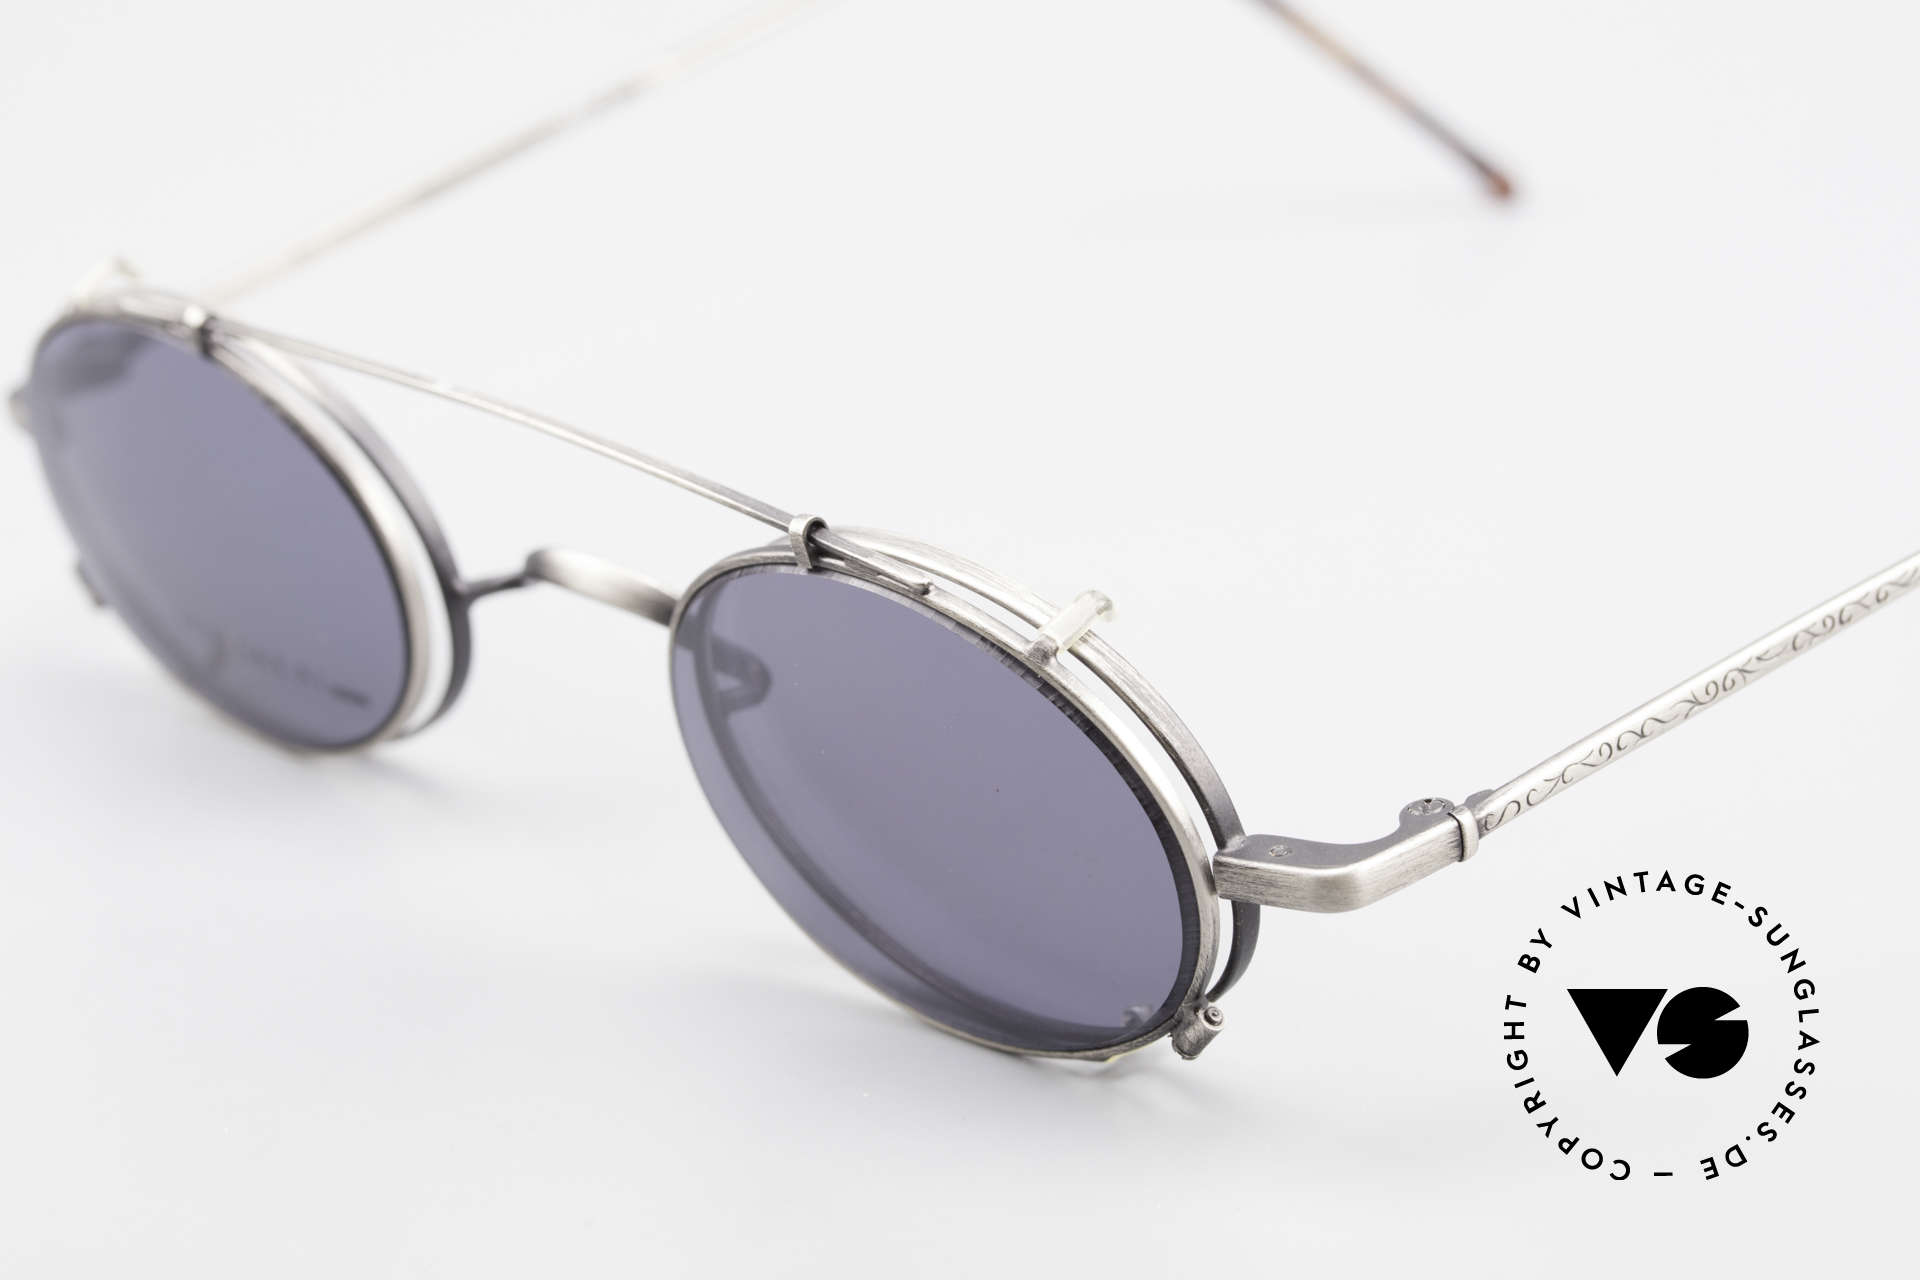 Koh Sakai KS9591 Small Oval Eyeglasses Clip On, made in the same factory like Oliver Peoples & Eyevan, Made for Men and Women